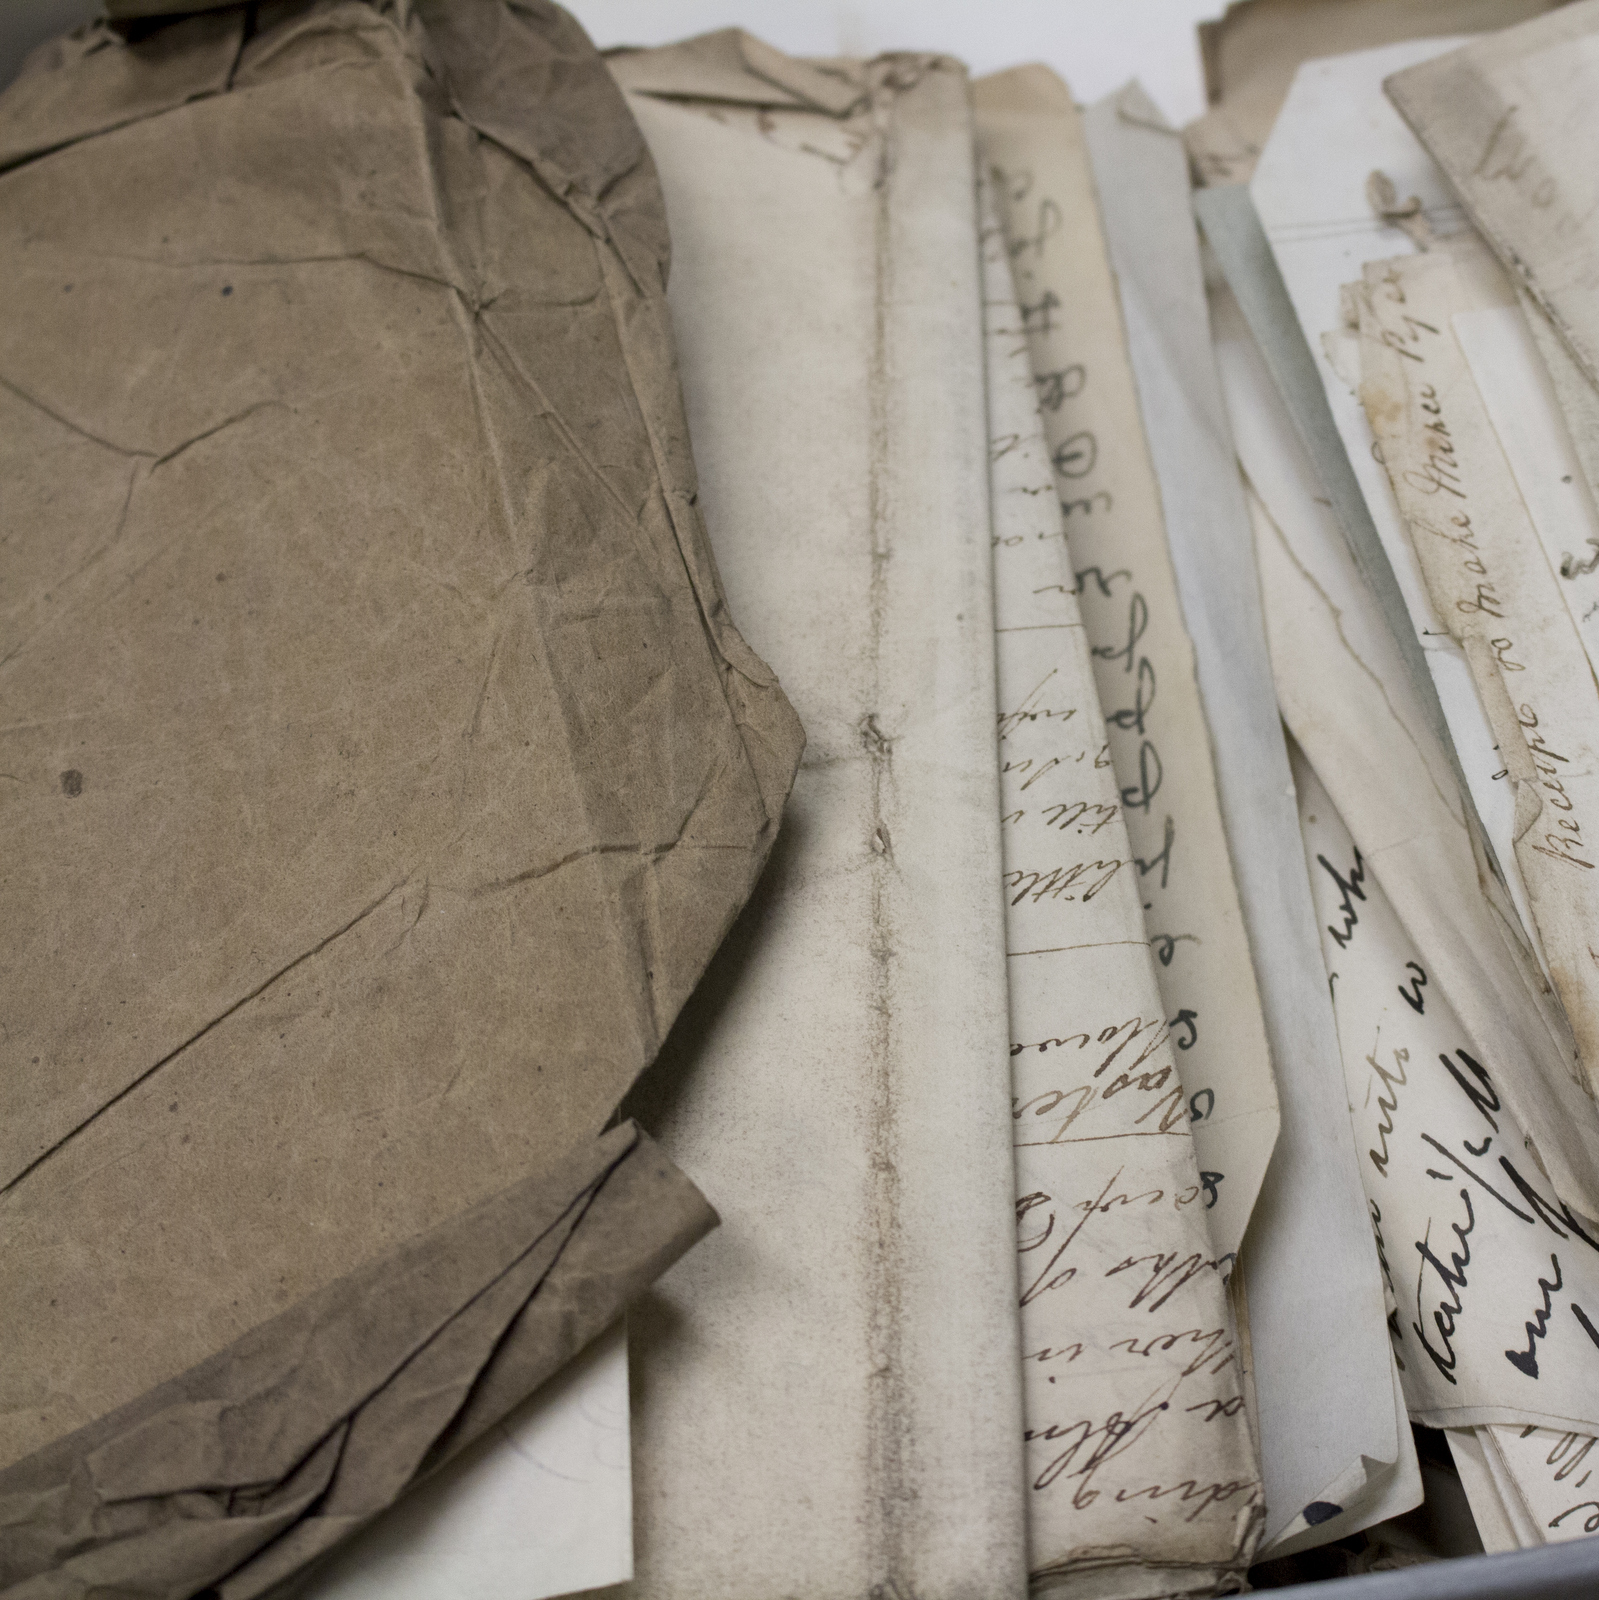 Doncaster Manuscript Collection, McGill Library. Photo: Lauren Goldman